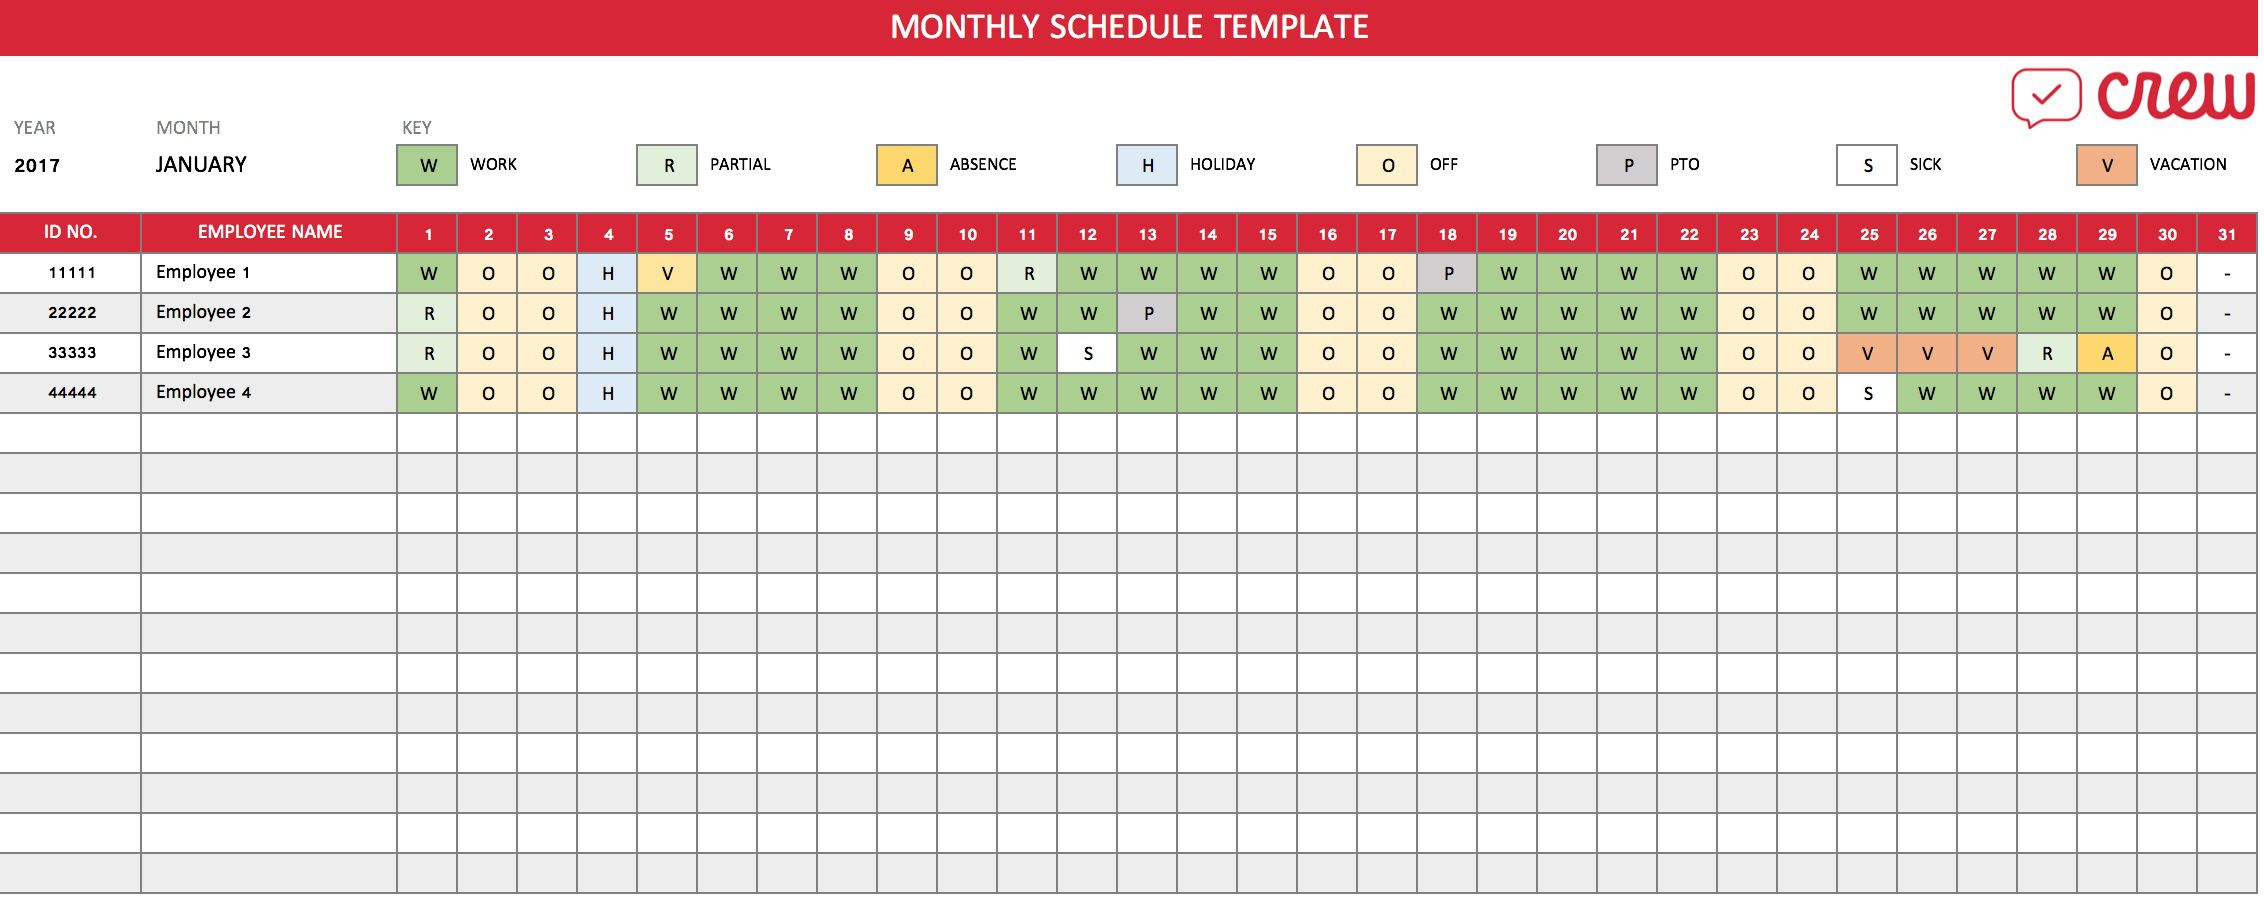 Monthly Employee Shift Schedule Template ~ Addictionary with Fre Shift Calenders